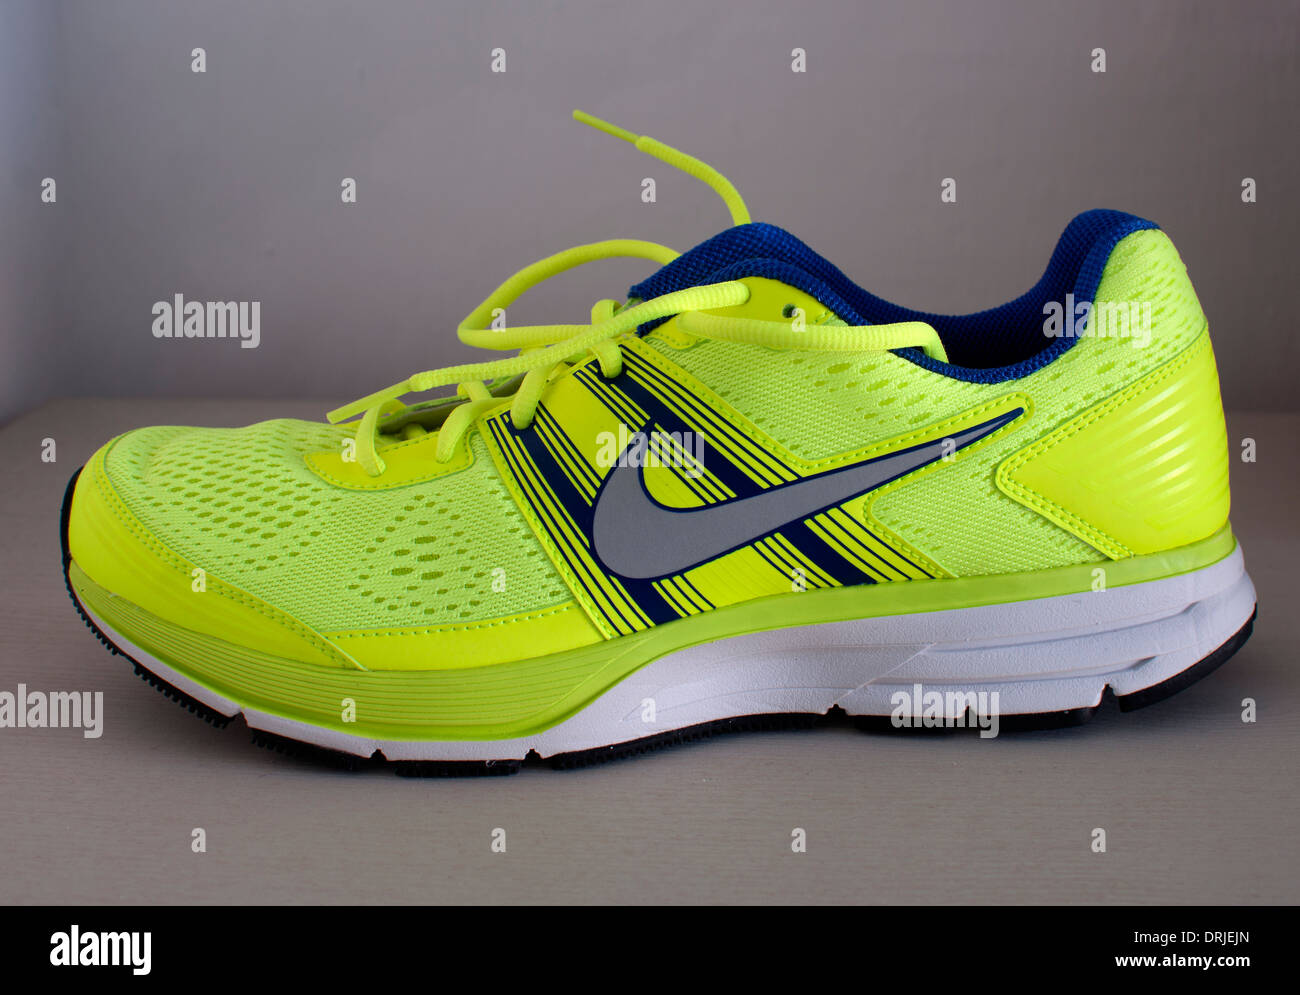 the latest c2f94 7c39f Nike Air Stock Photos & Nike Air Stock Images - Alamy